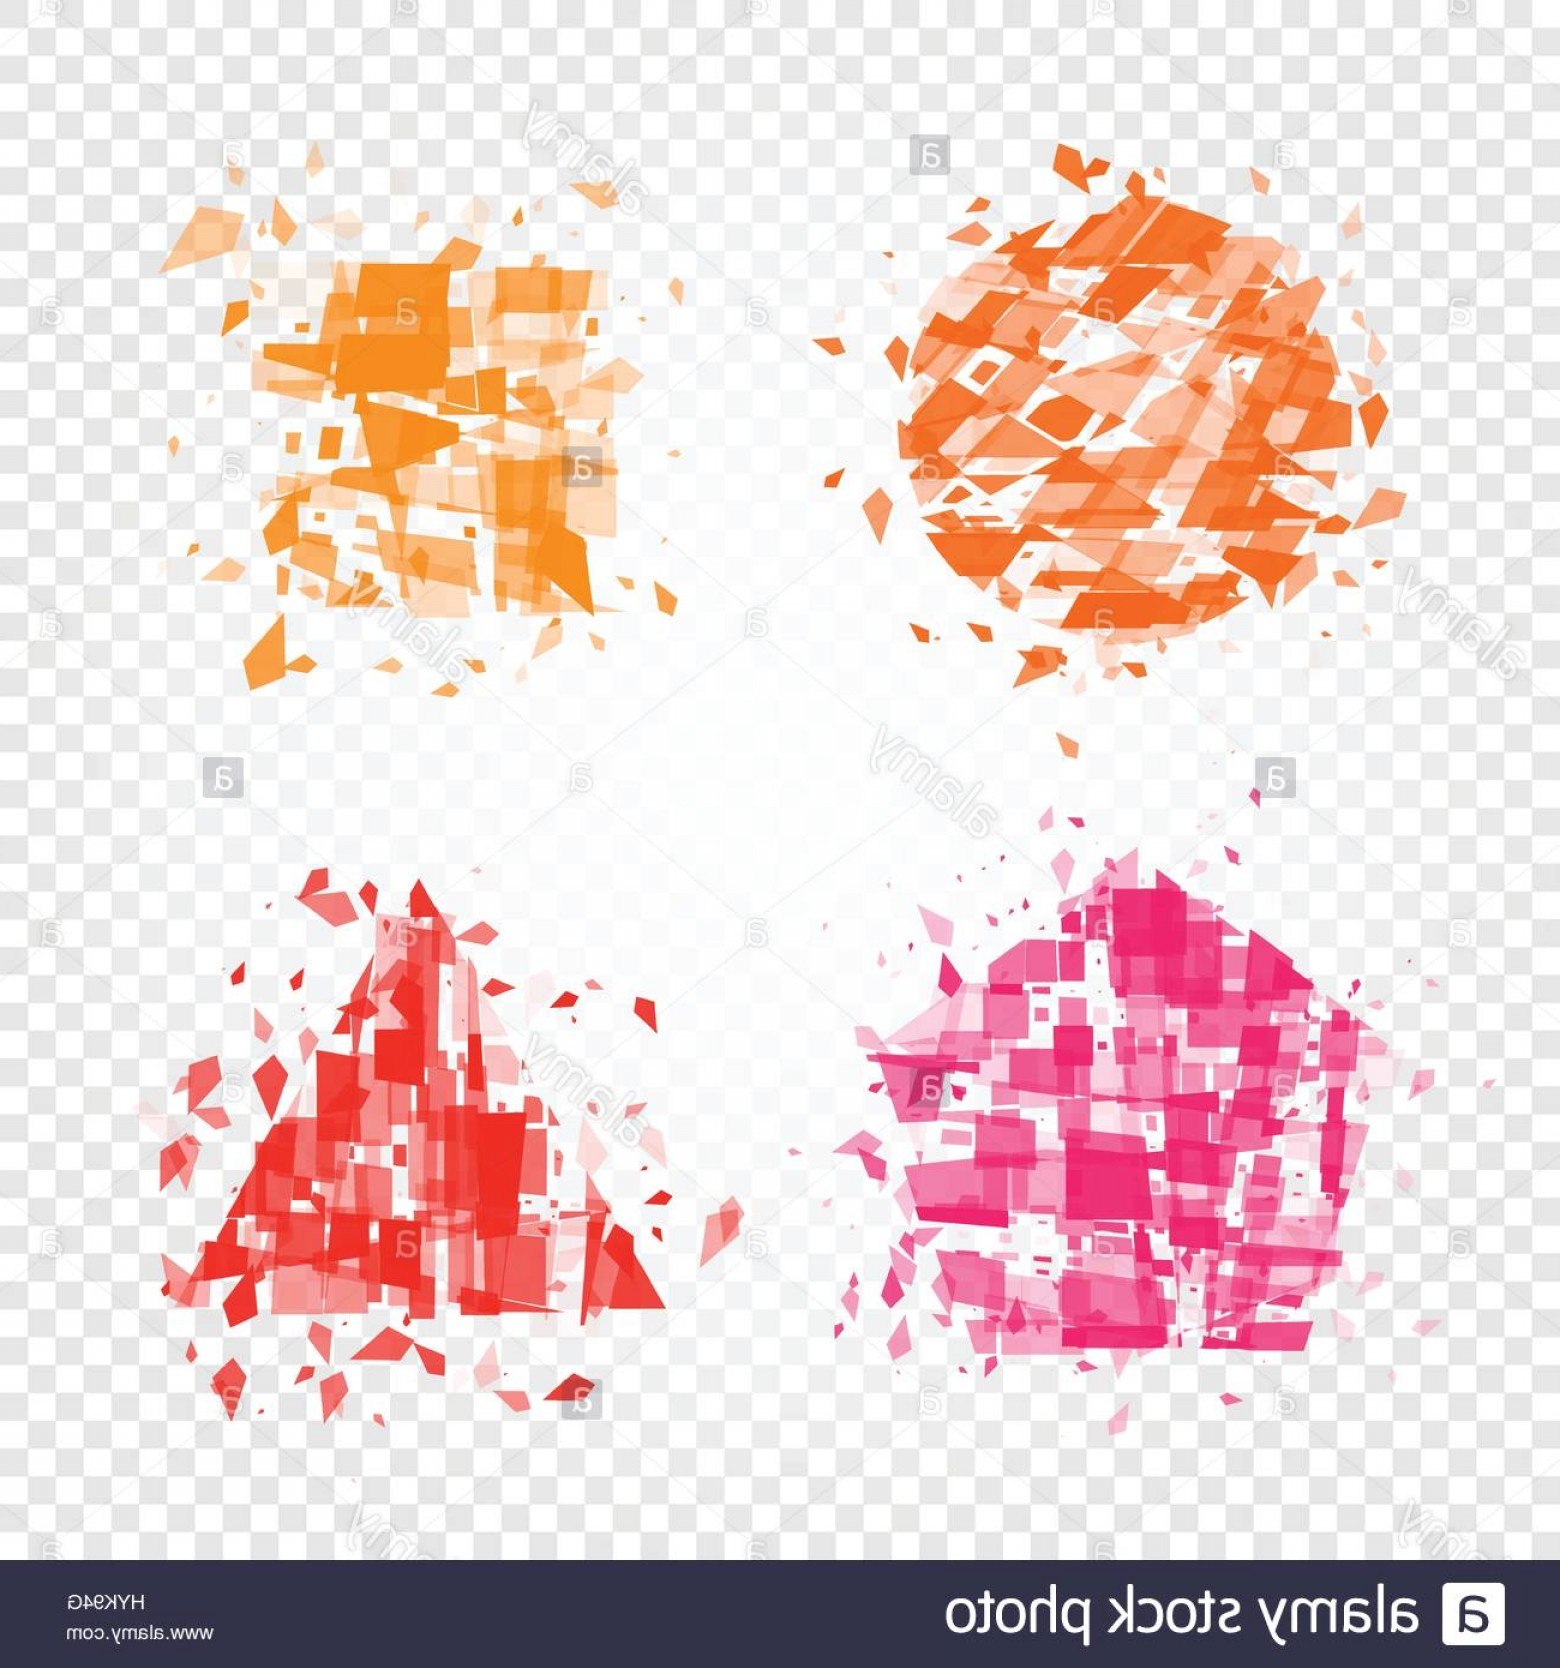 Vector Broken Pieces: Stock Photo Isolated Abstract Colorful Geometric Shapes Of Broken Pieces Logo